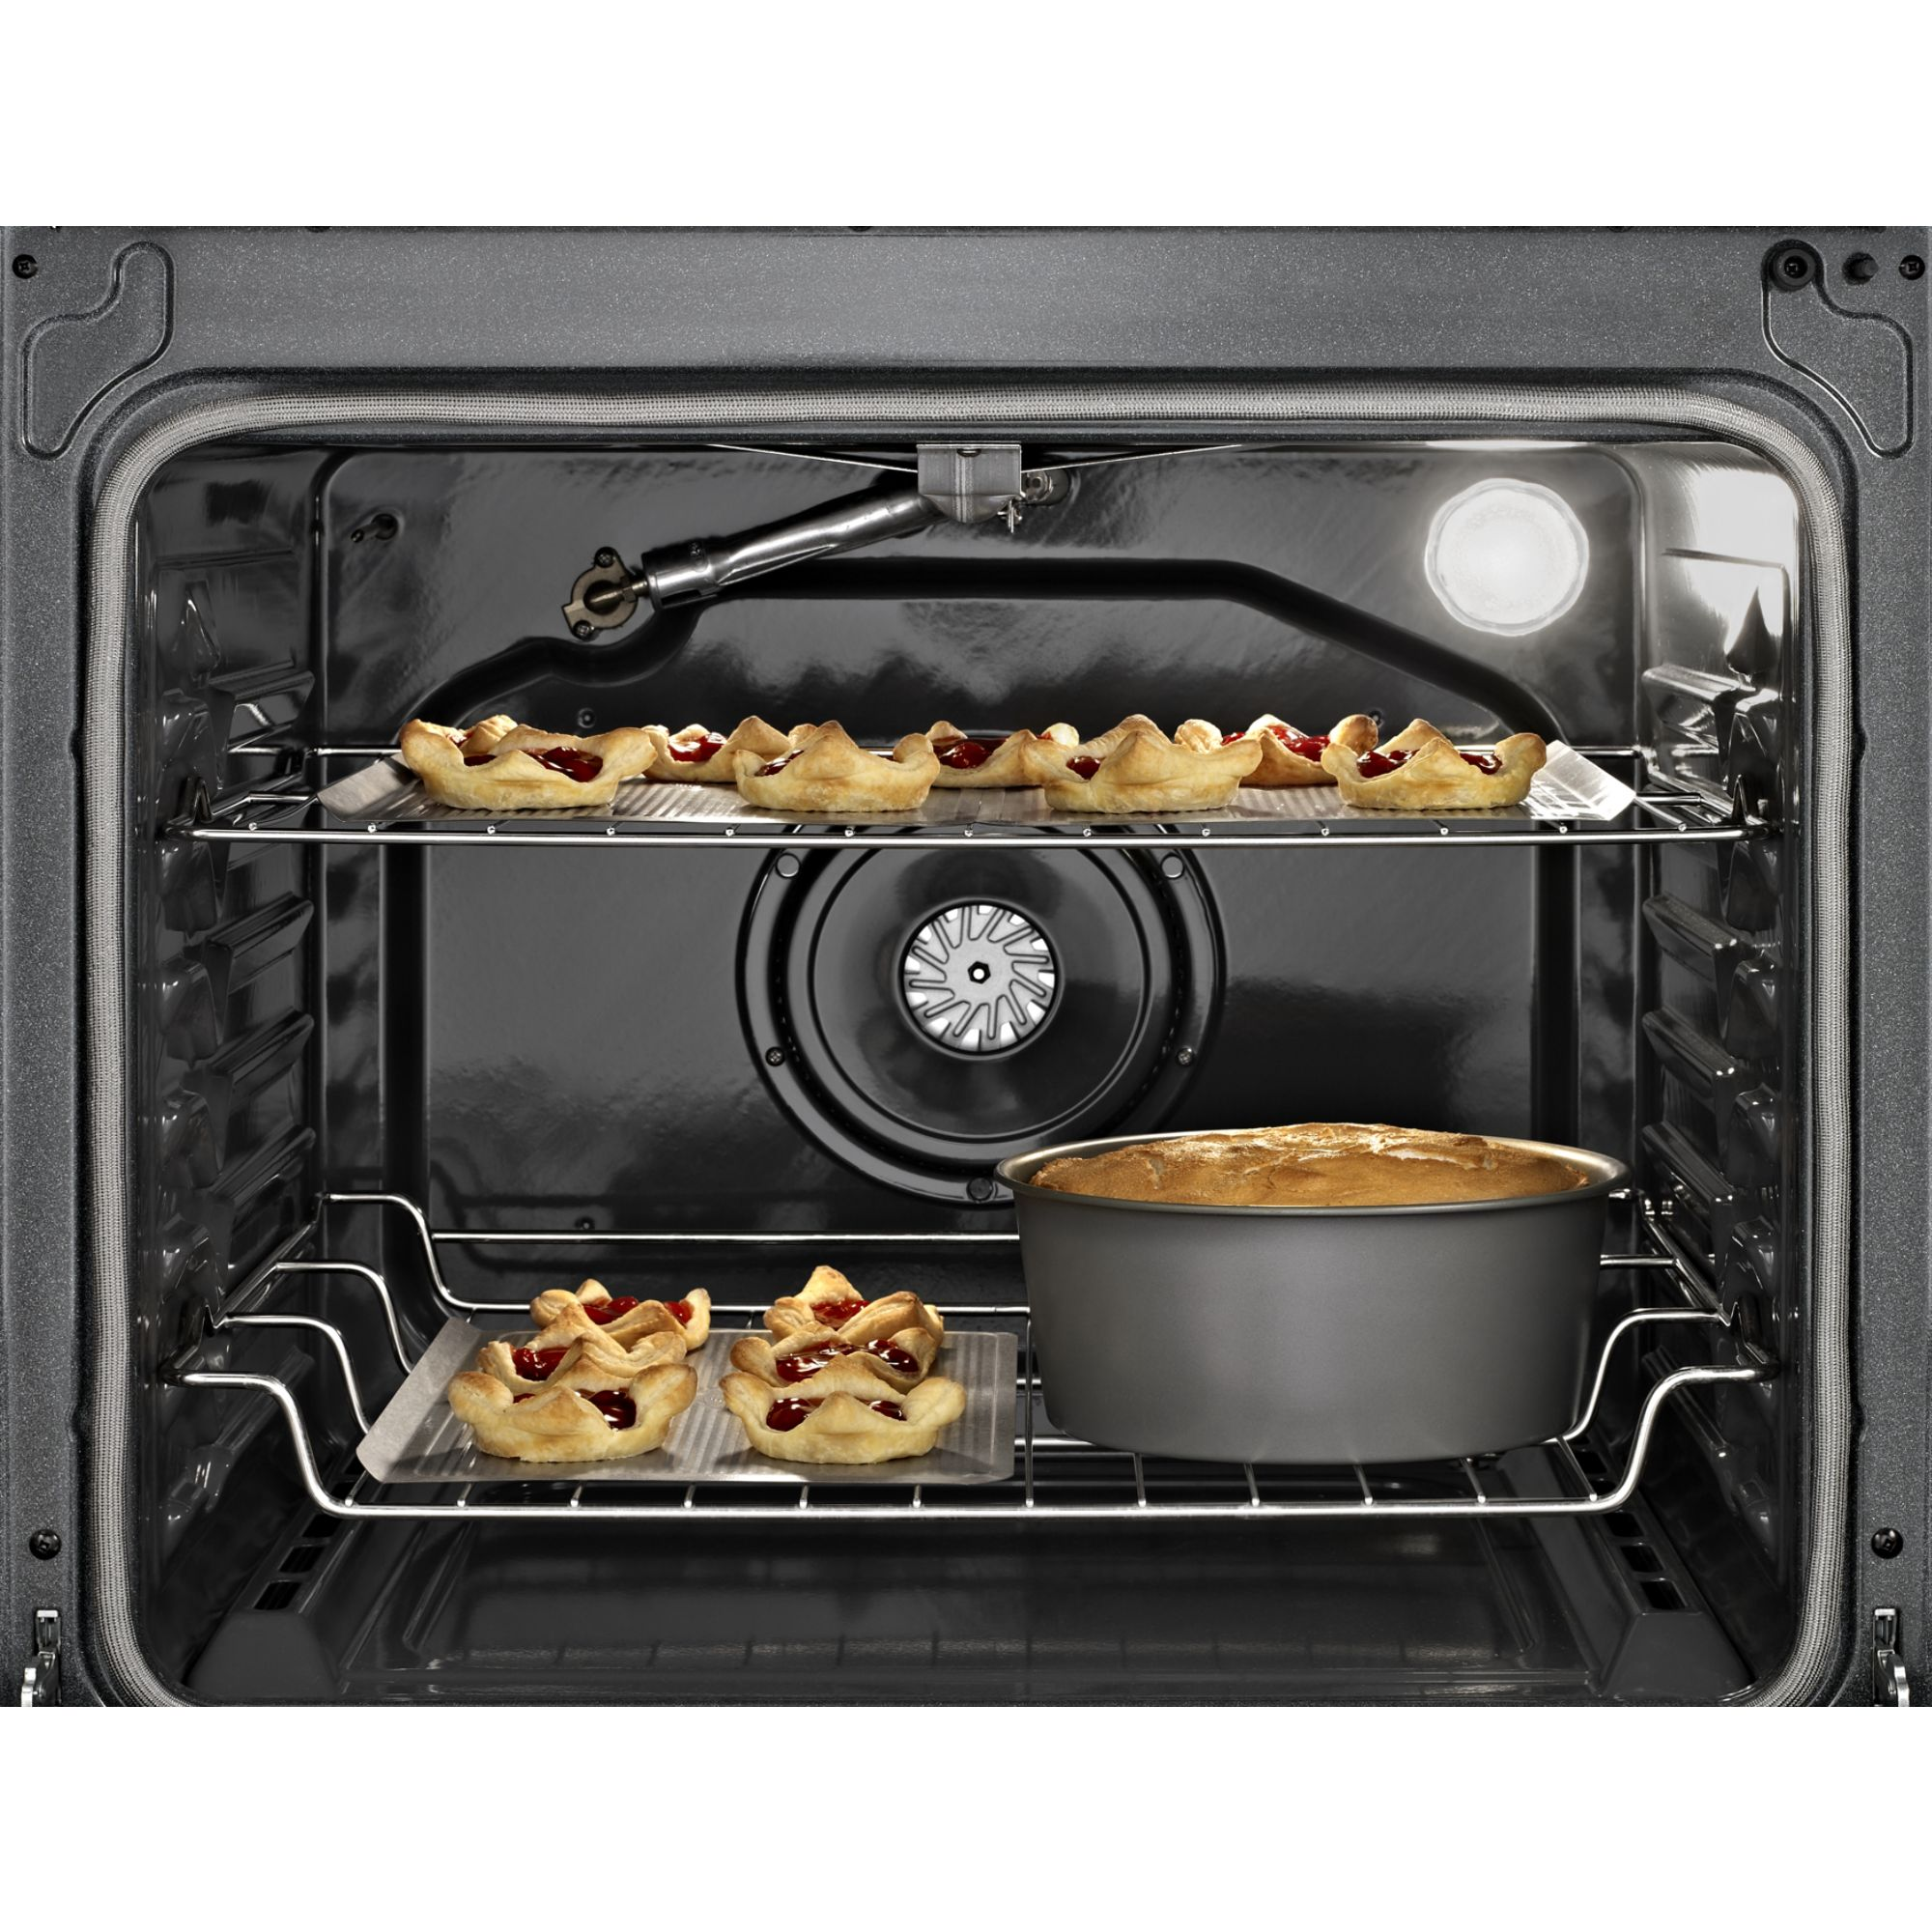 Whirlpool 5.8 cu. ft.  Freestanding Gas Range w/ AquaLift™ Self-Clean Technology - Stainless Steel